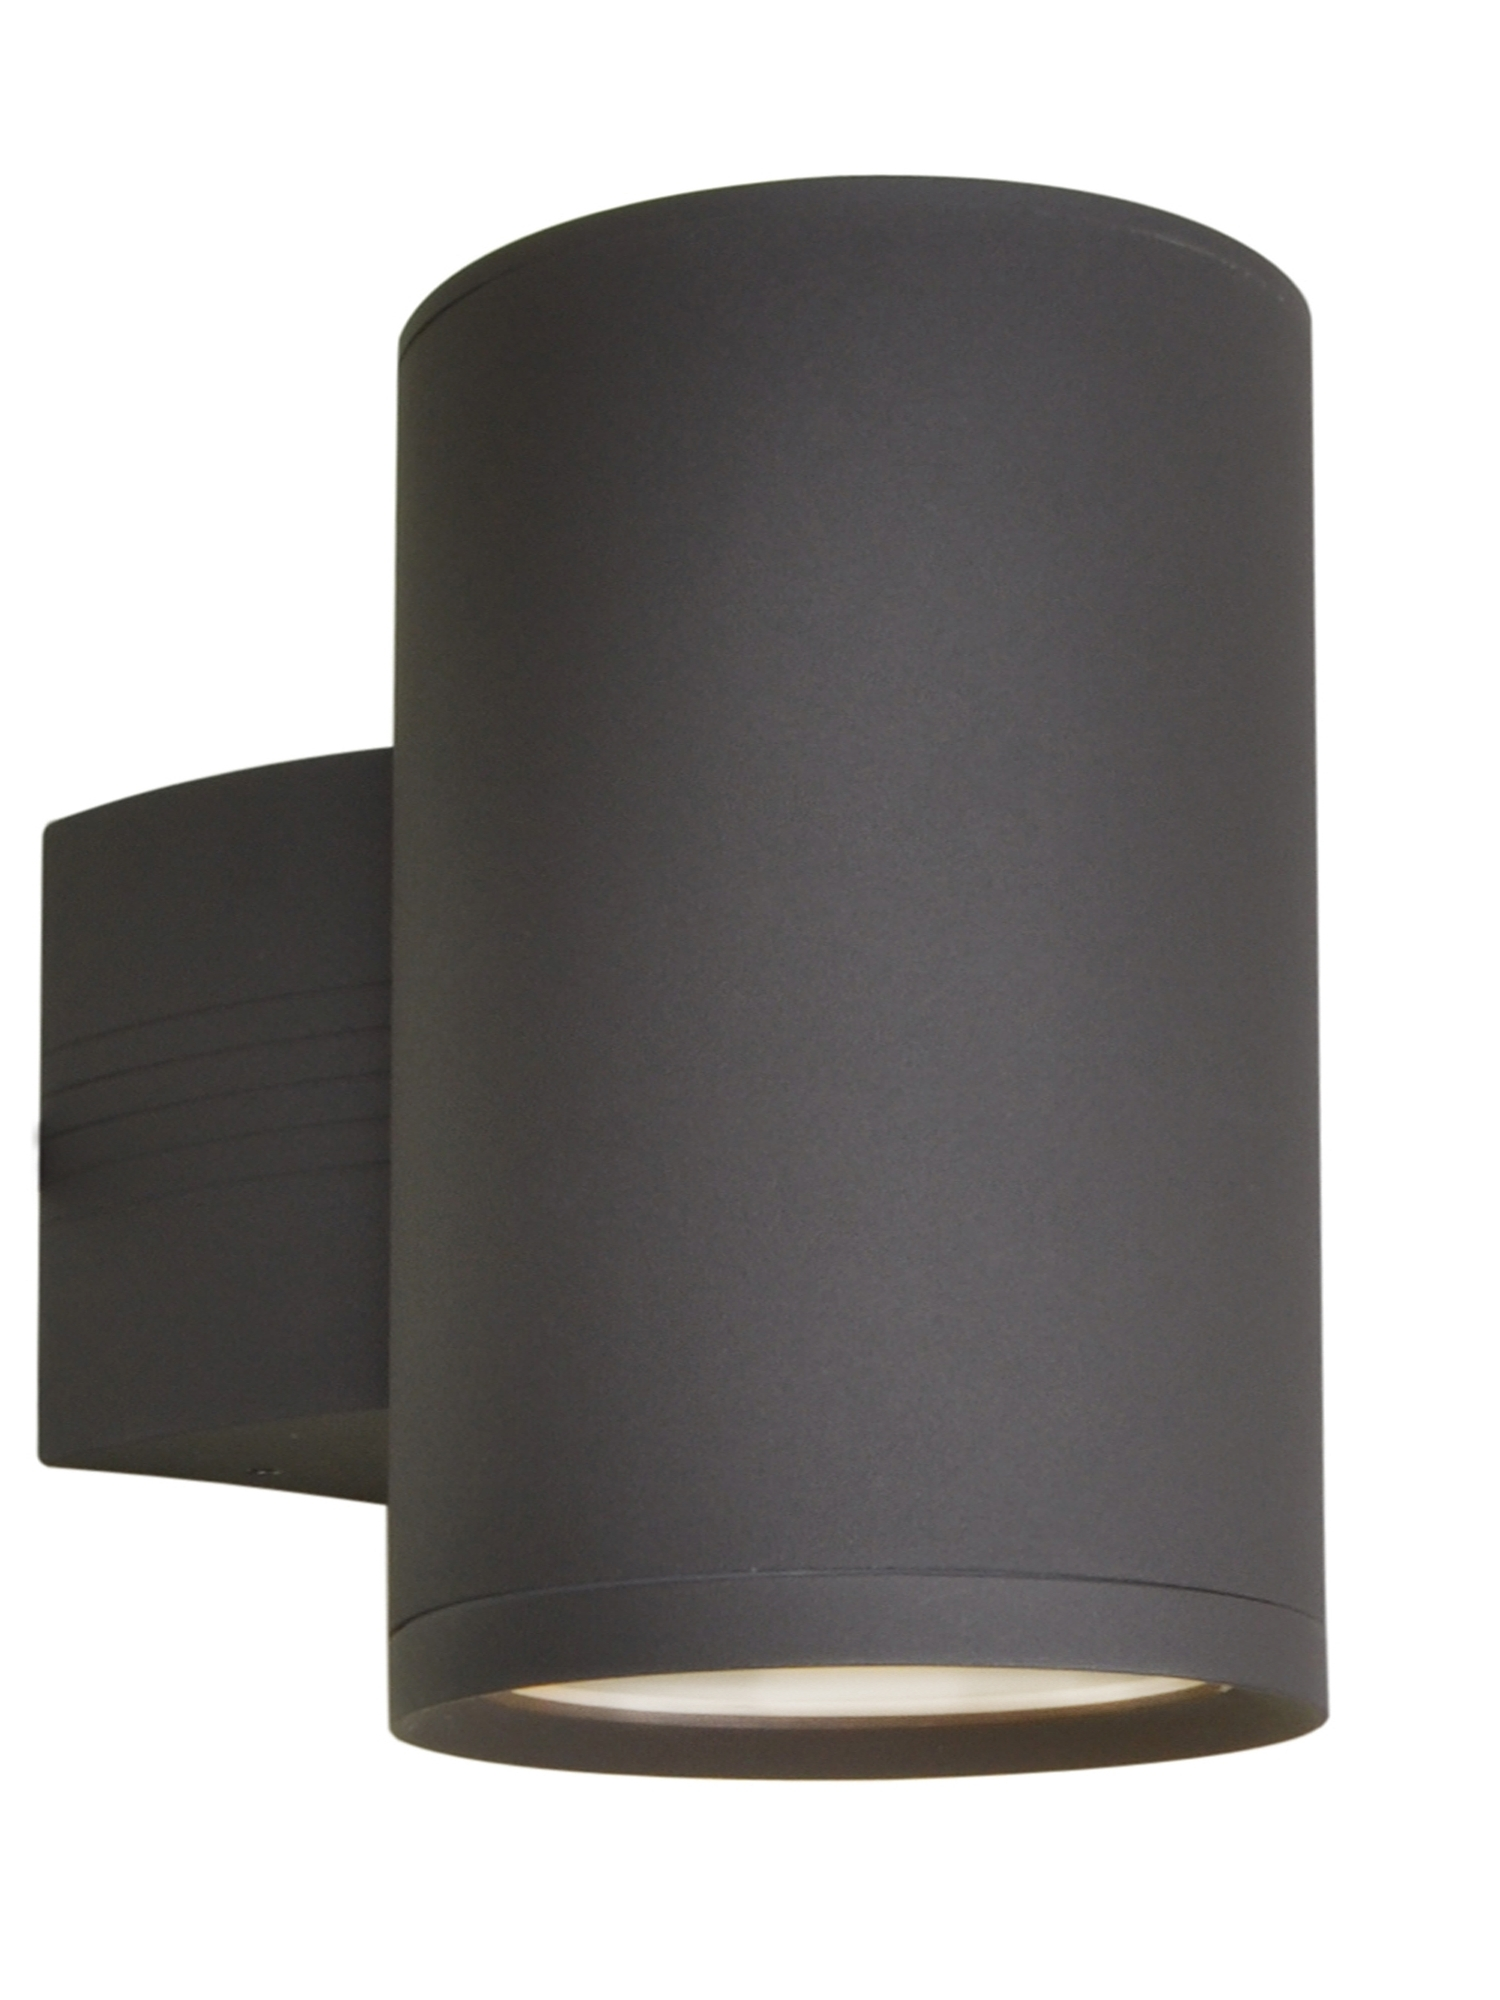 Inspiration about Plain Outdoor Wall Lightmaxim Lighting | 6101Abz In Sconce Outdoor Wall Lighting (#6 of 15)